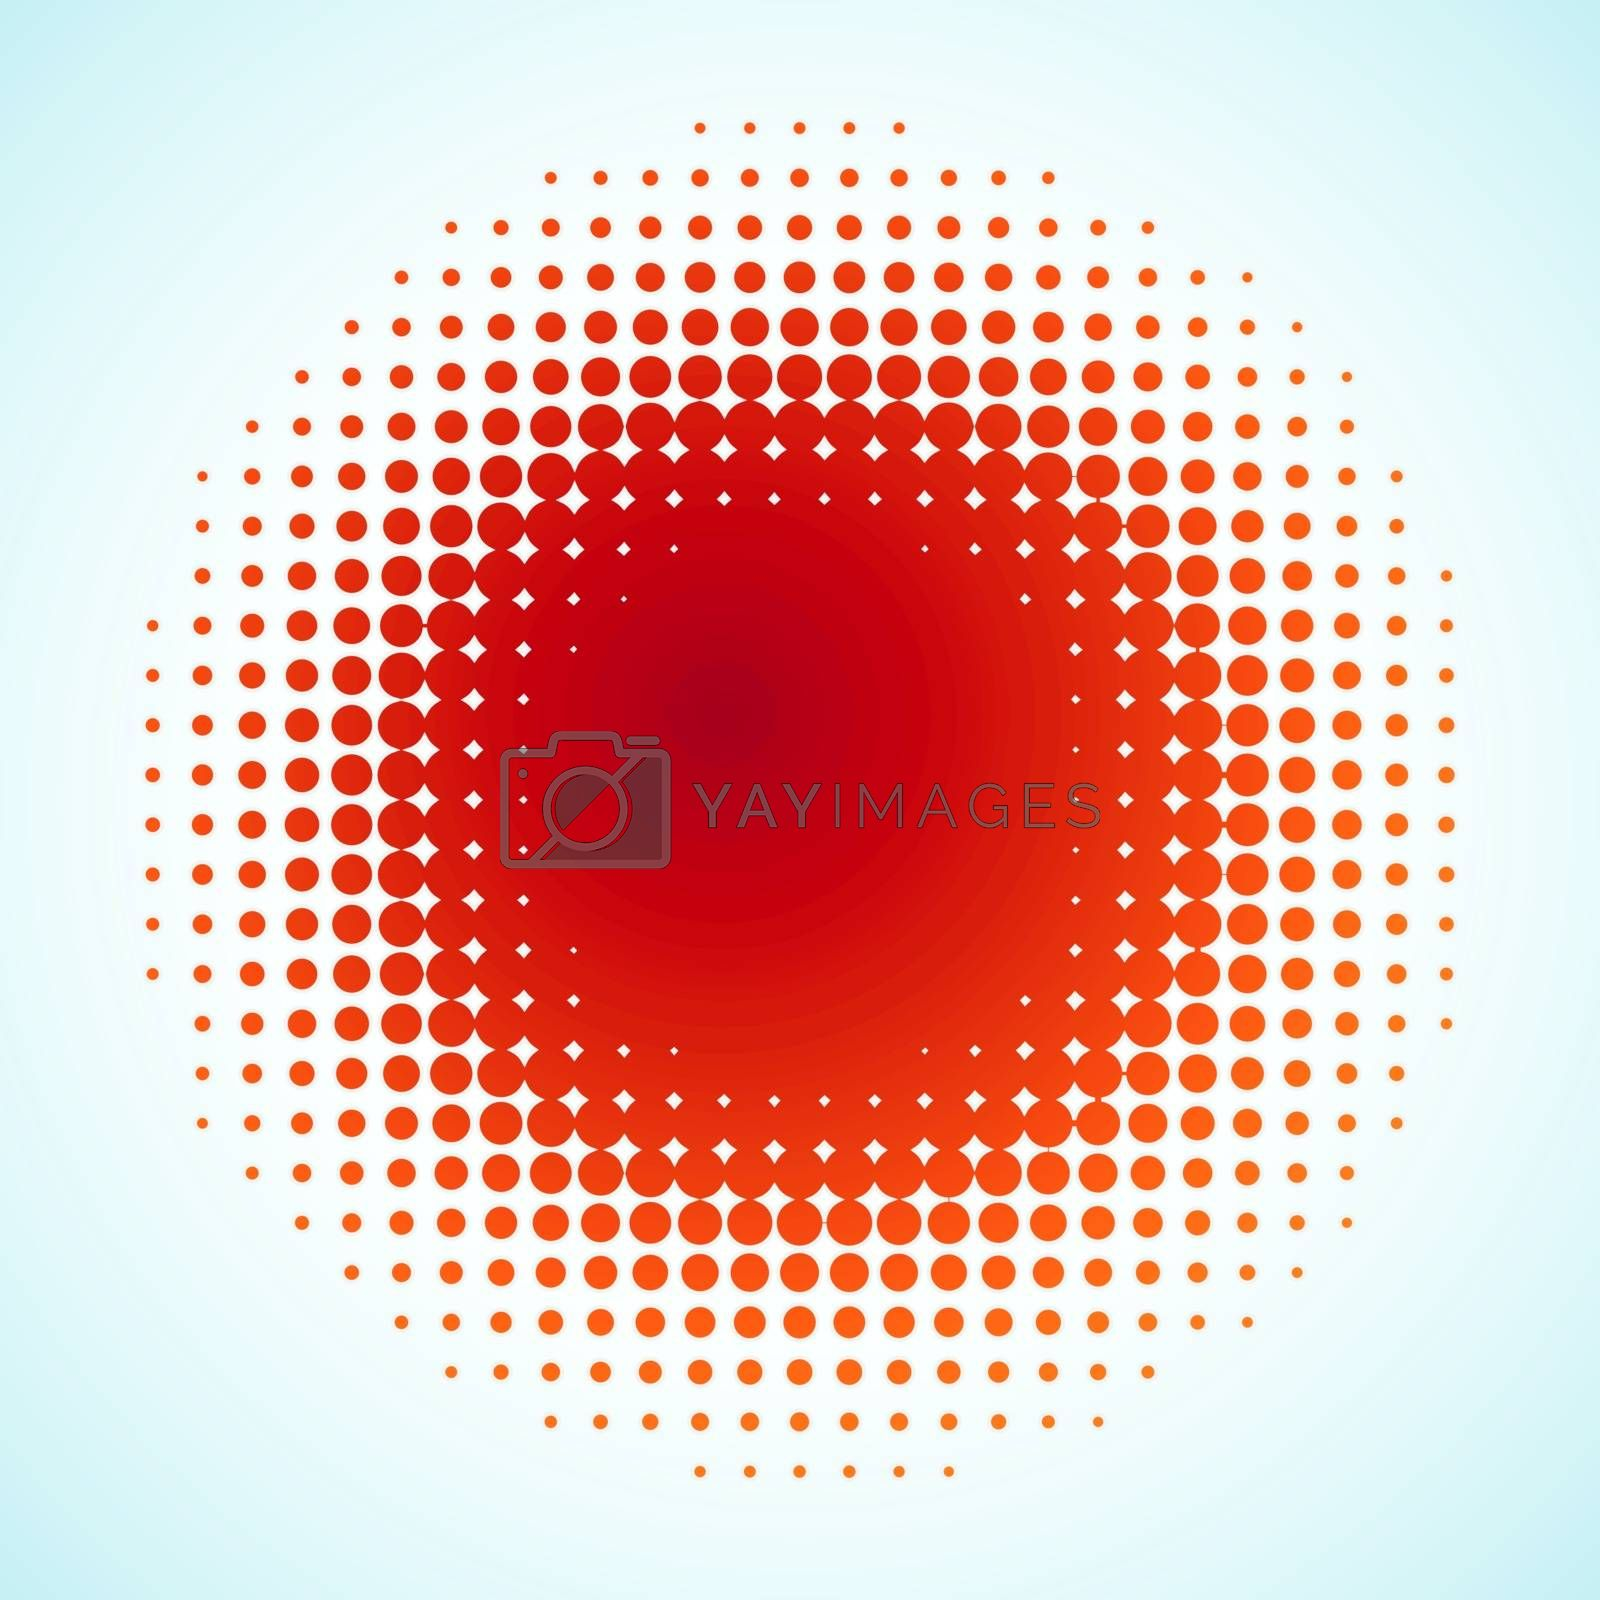 spotted flash (vector design element)  EPS 10 vector file included